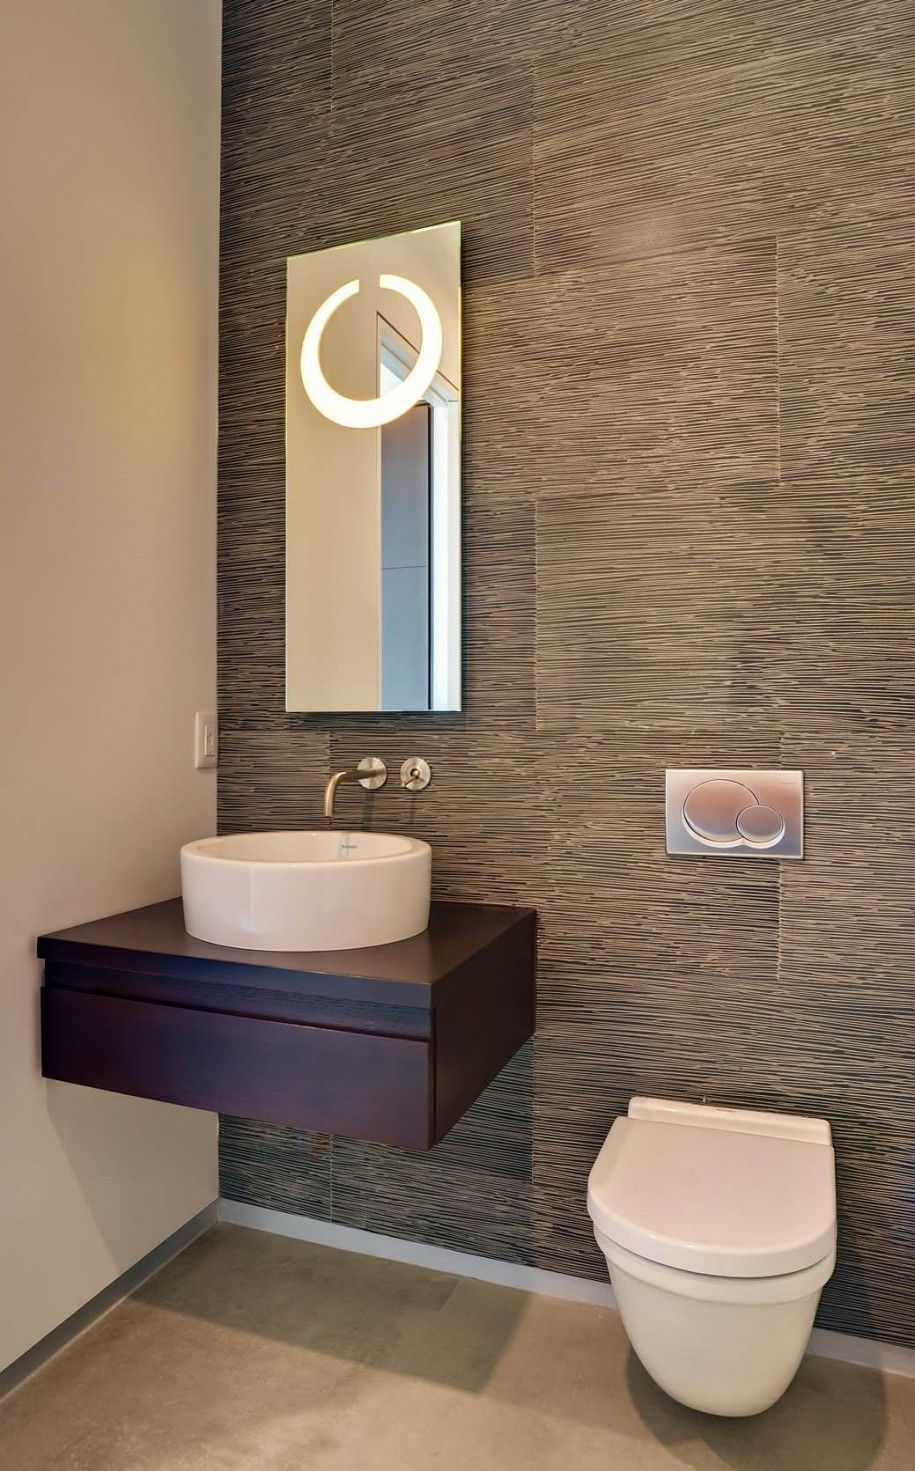 Tiny Powder Room Designs: Modern Small Powder Room Design Featuring Cool Grey Wood